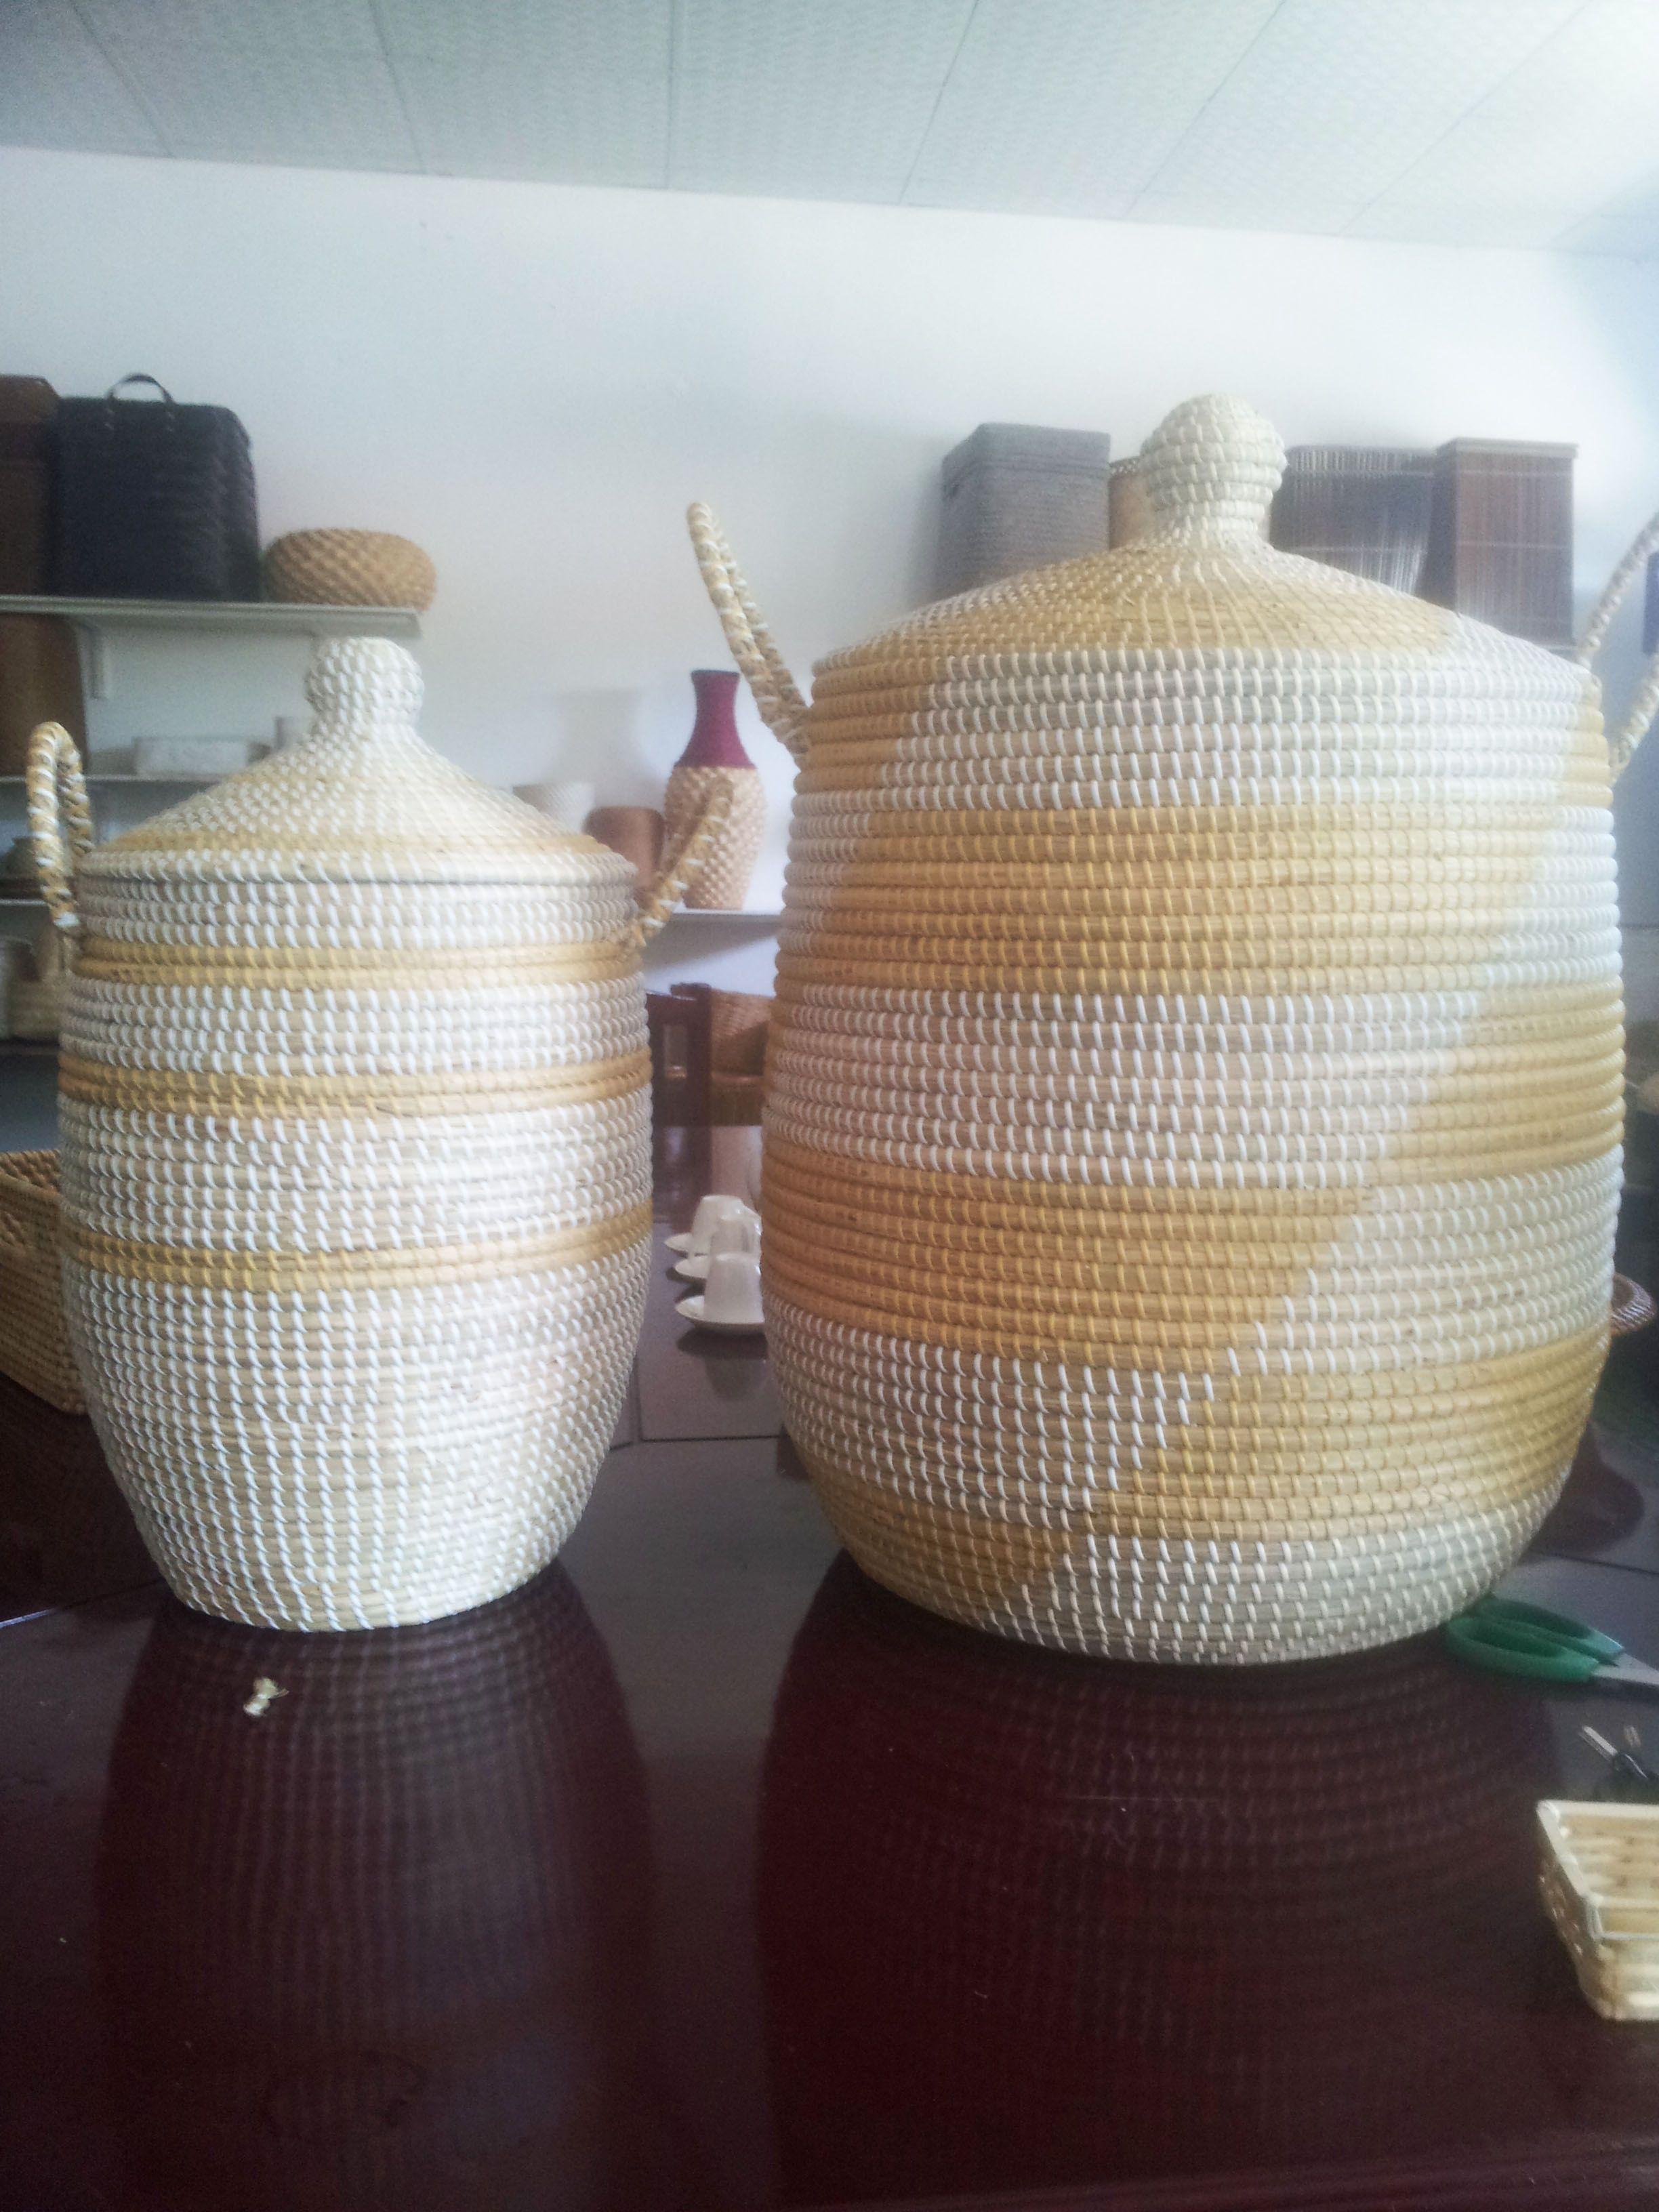 fedd32cbf86f Coiled seagrass basket wholesale export from Vietnam